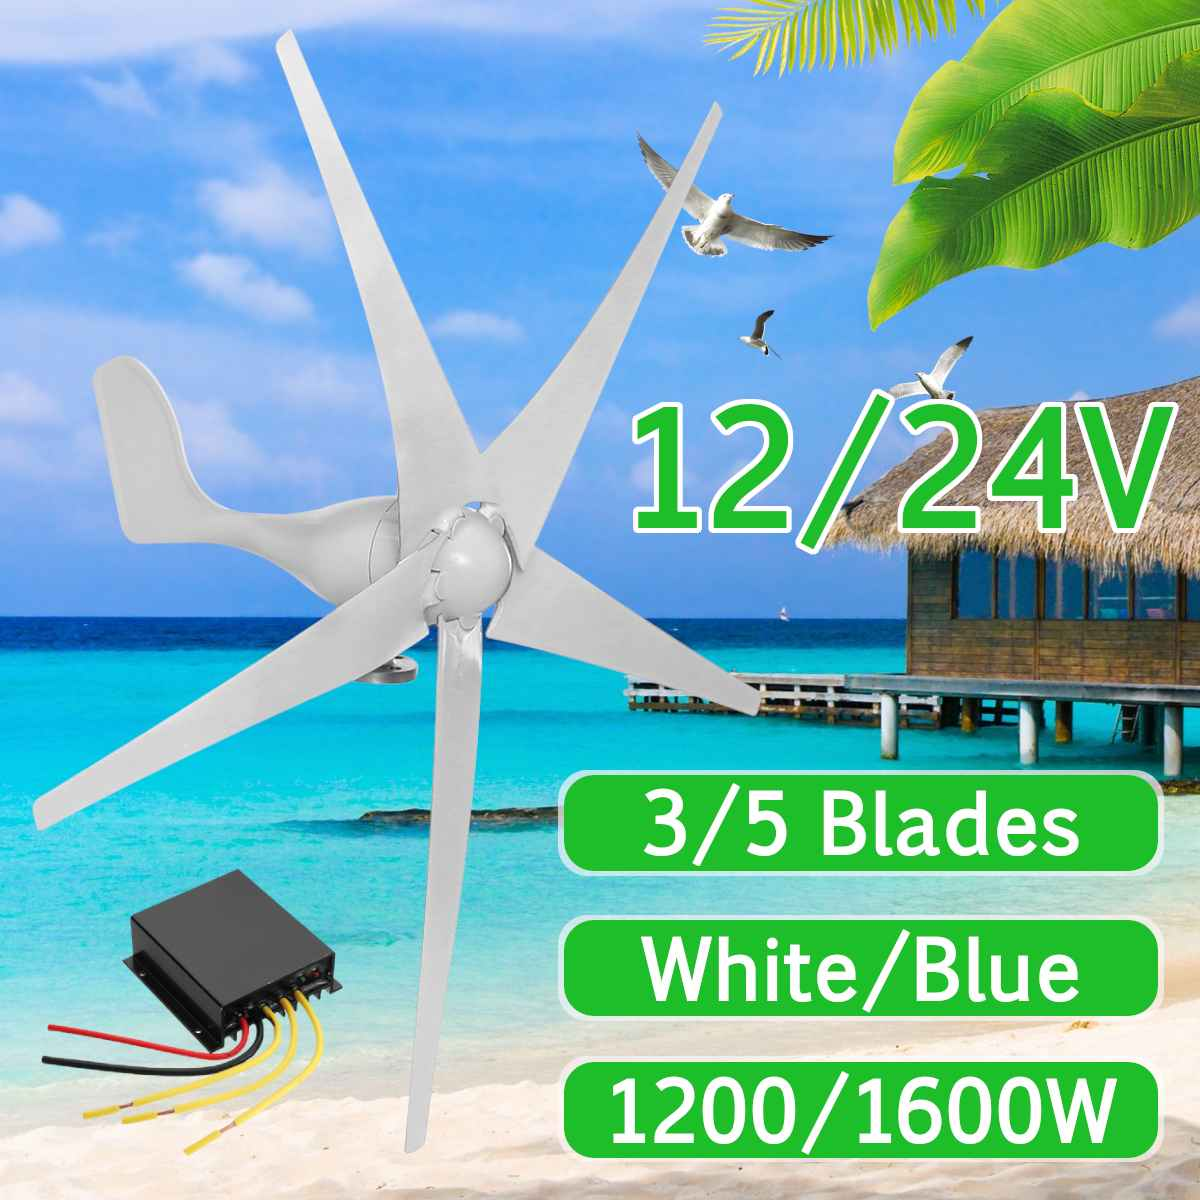 1200/1600W Wind for Turbine Generator3/5 Wind Blades Option Wind Controller Gift Fit for Home Or Camping +Mounting accessories